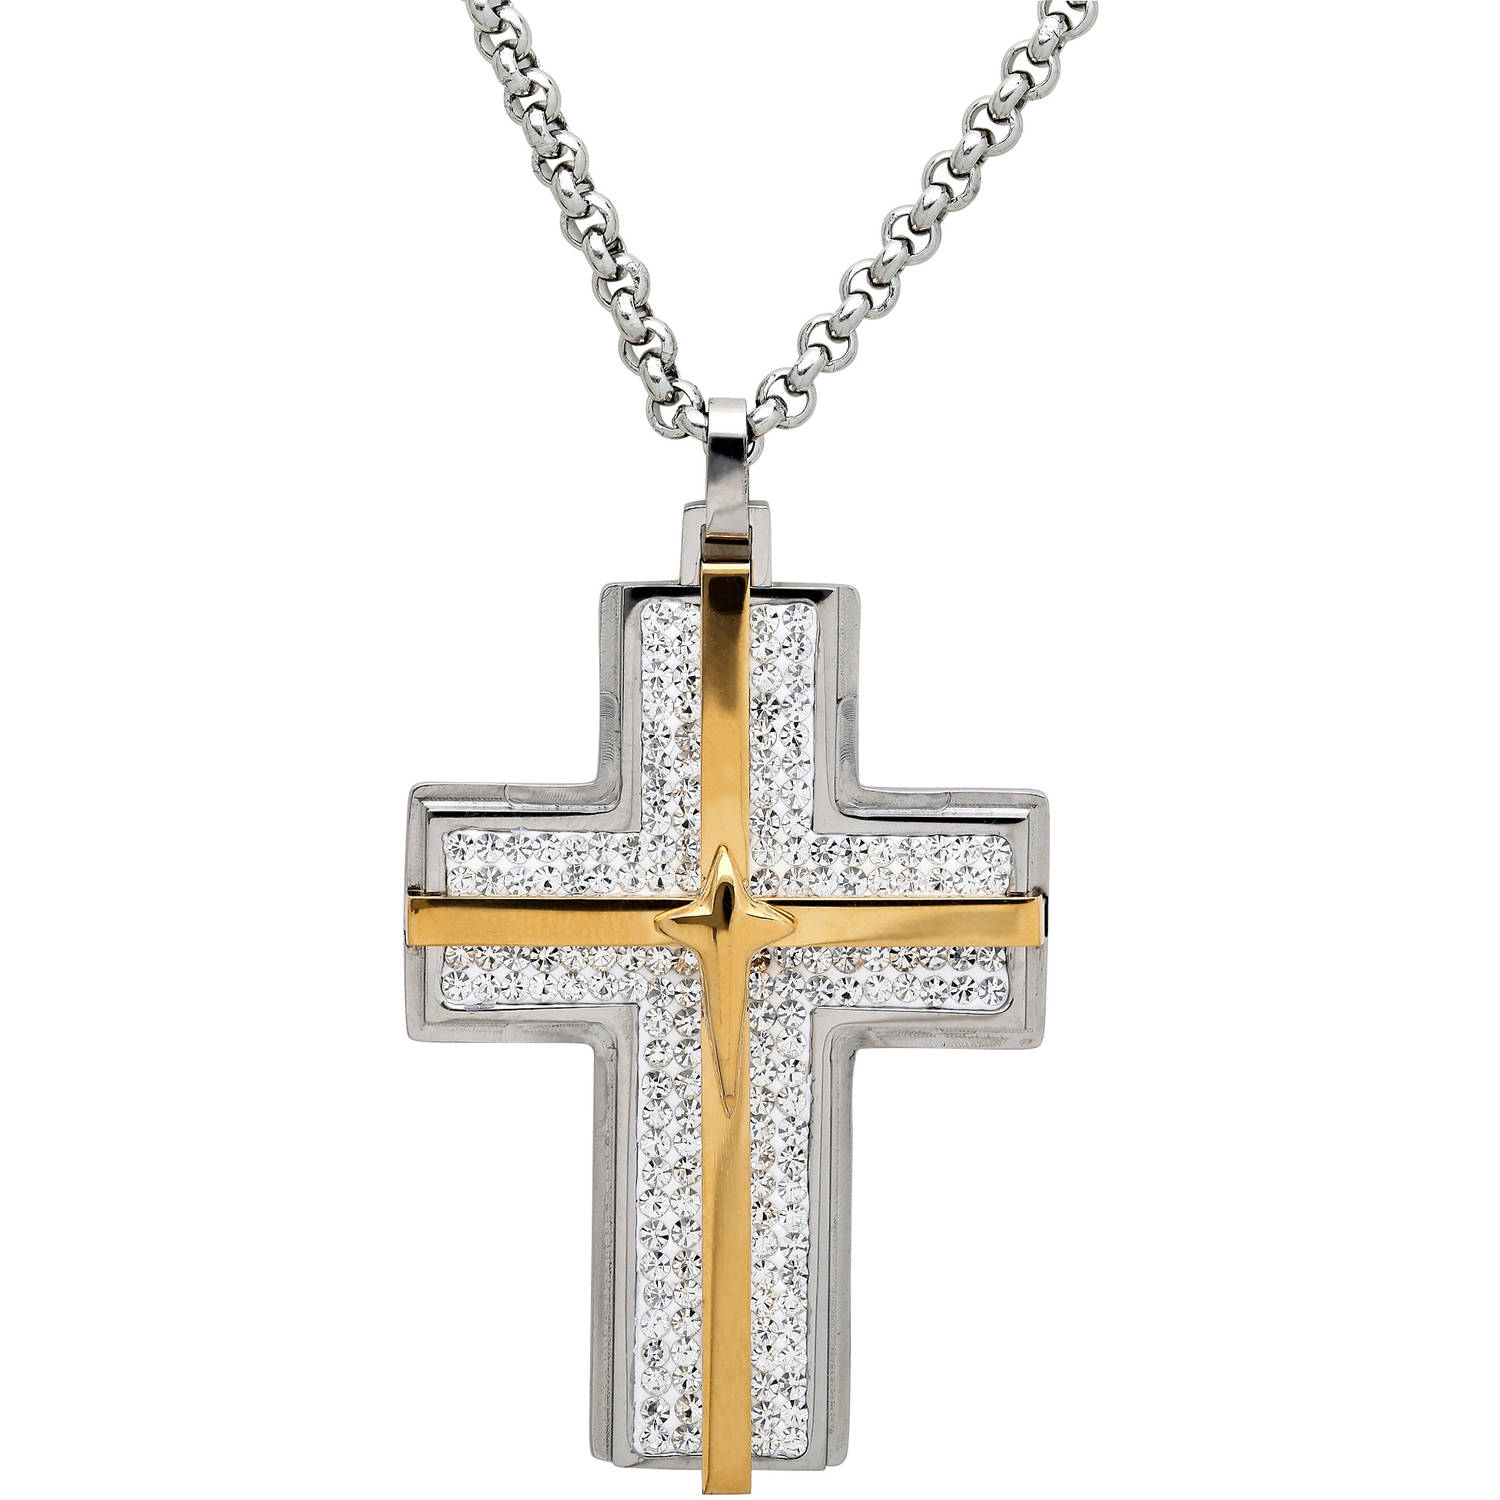 "Men's Crystal Accent Stainless Steel and 18kt Gold Cross Pendant, 24"" by Richline Group Inc"